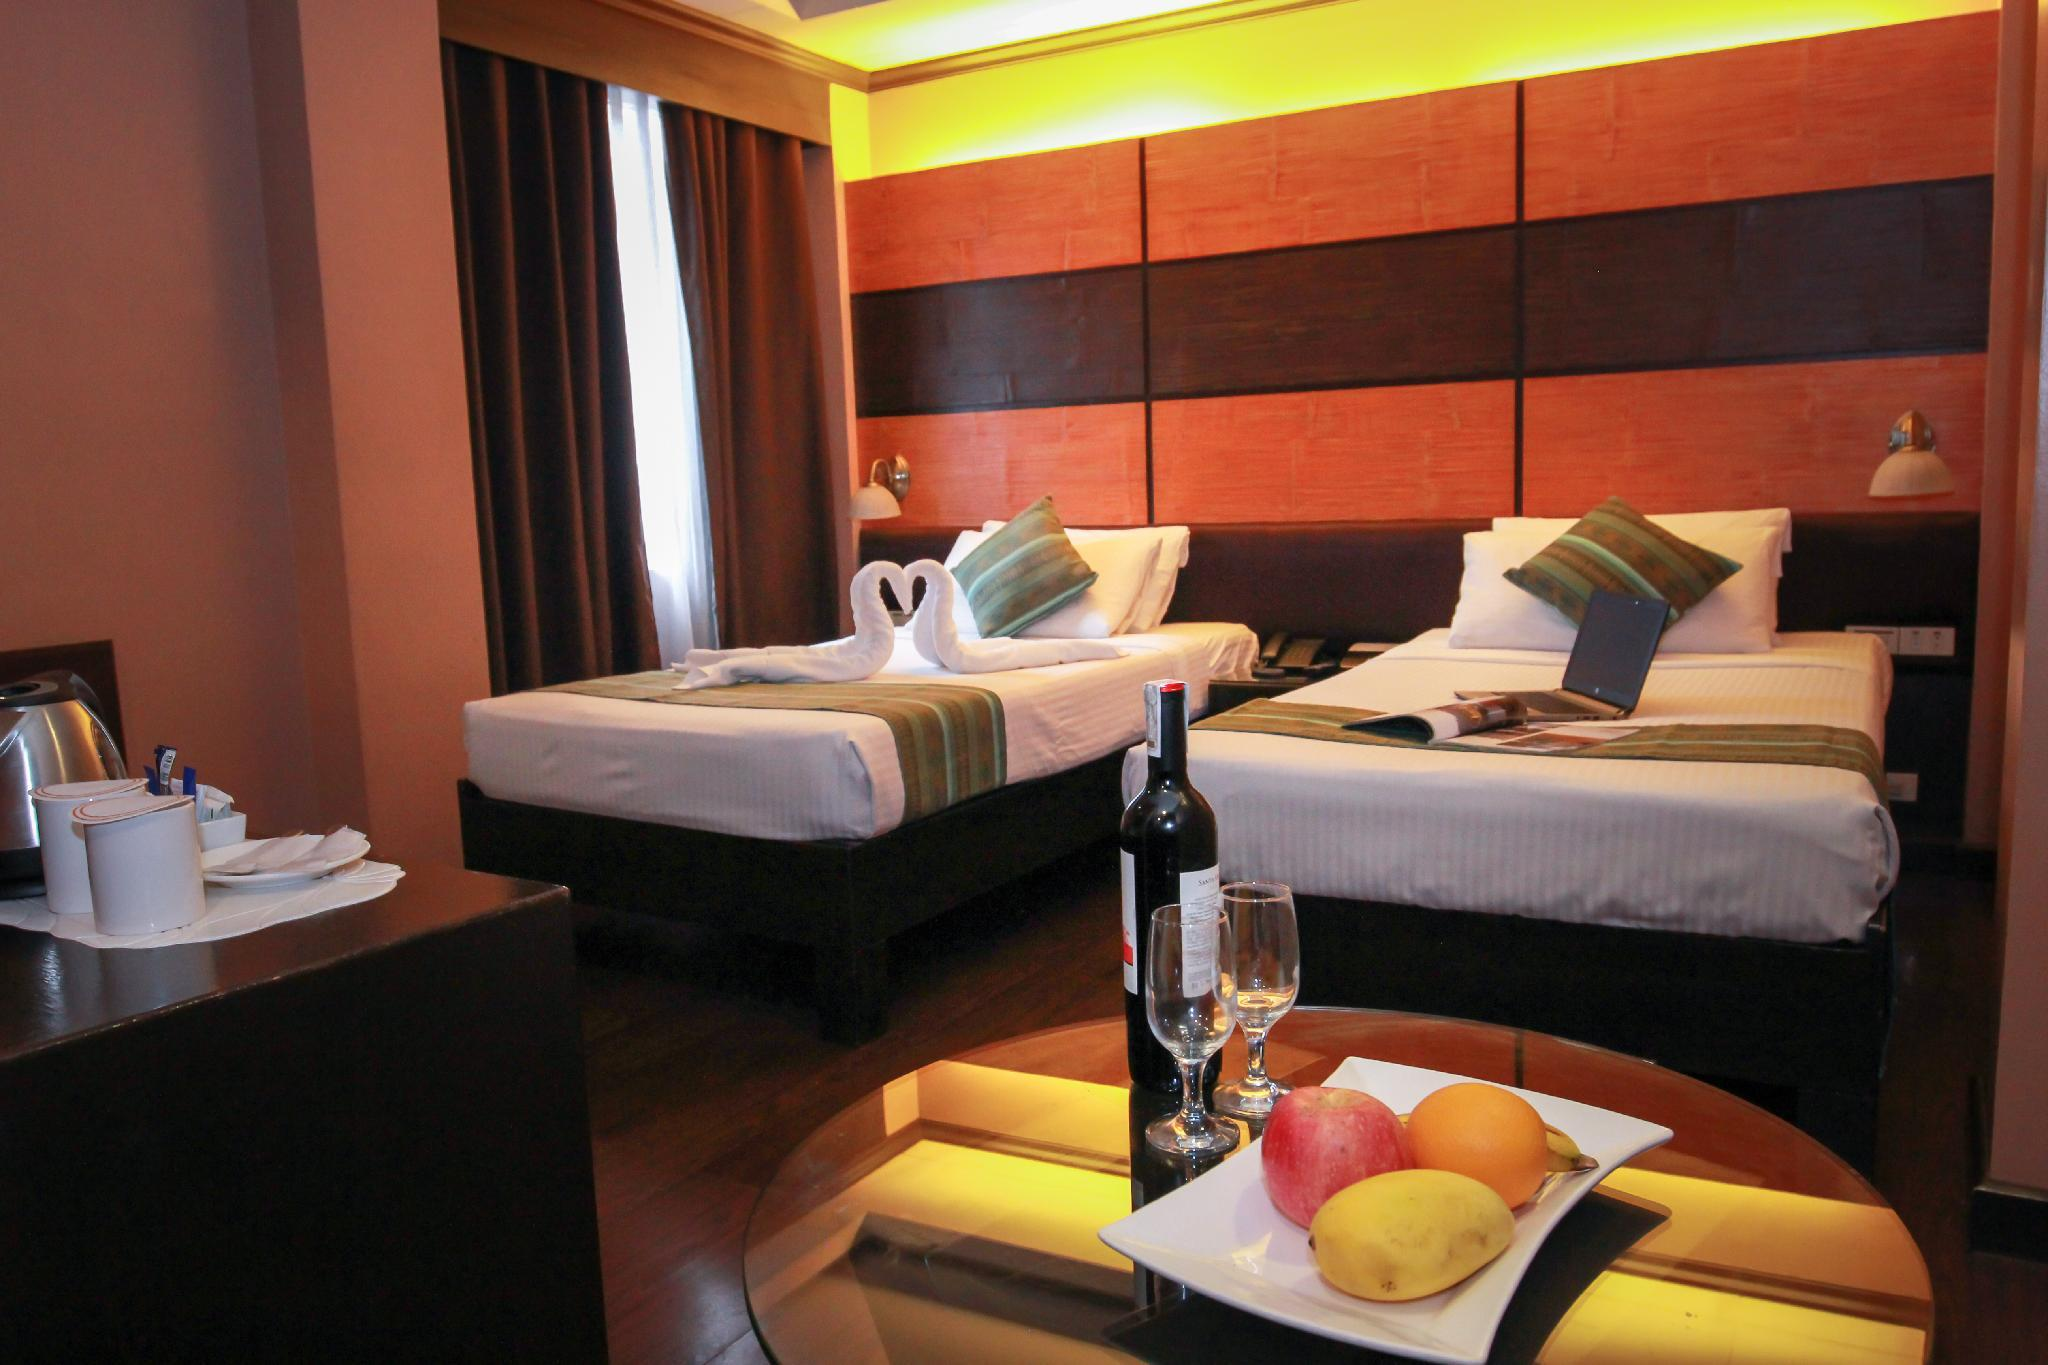 Kamar Superior dengan 2 Kasur Single – Bebas Asap Rokok (2 Single Beds Superior Room, No Smoking)